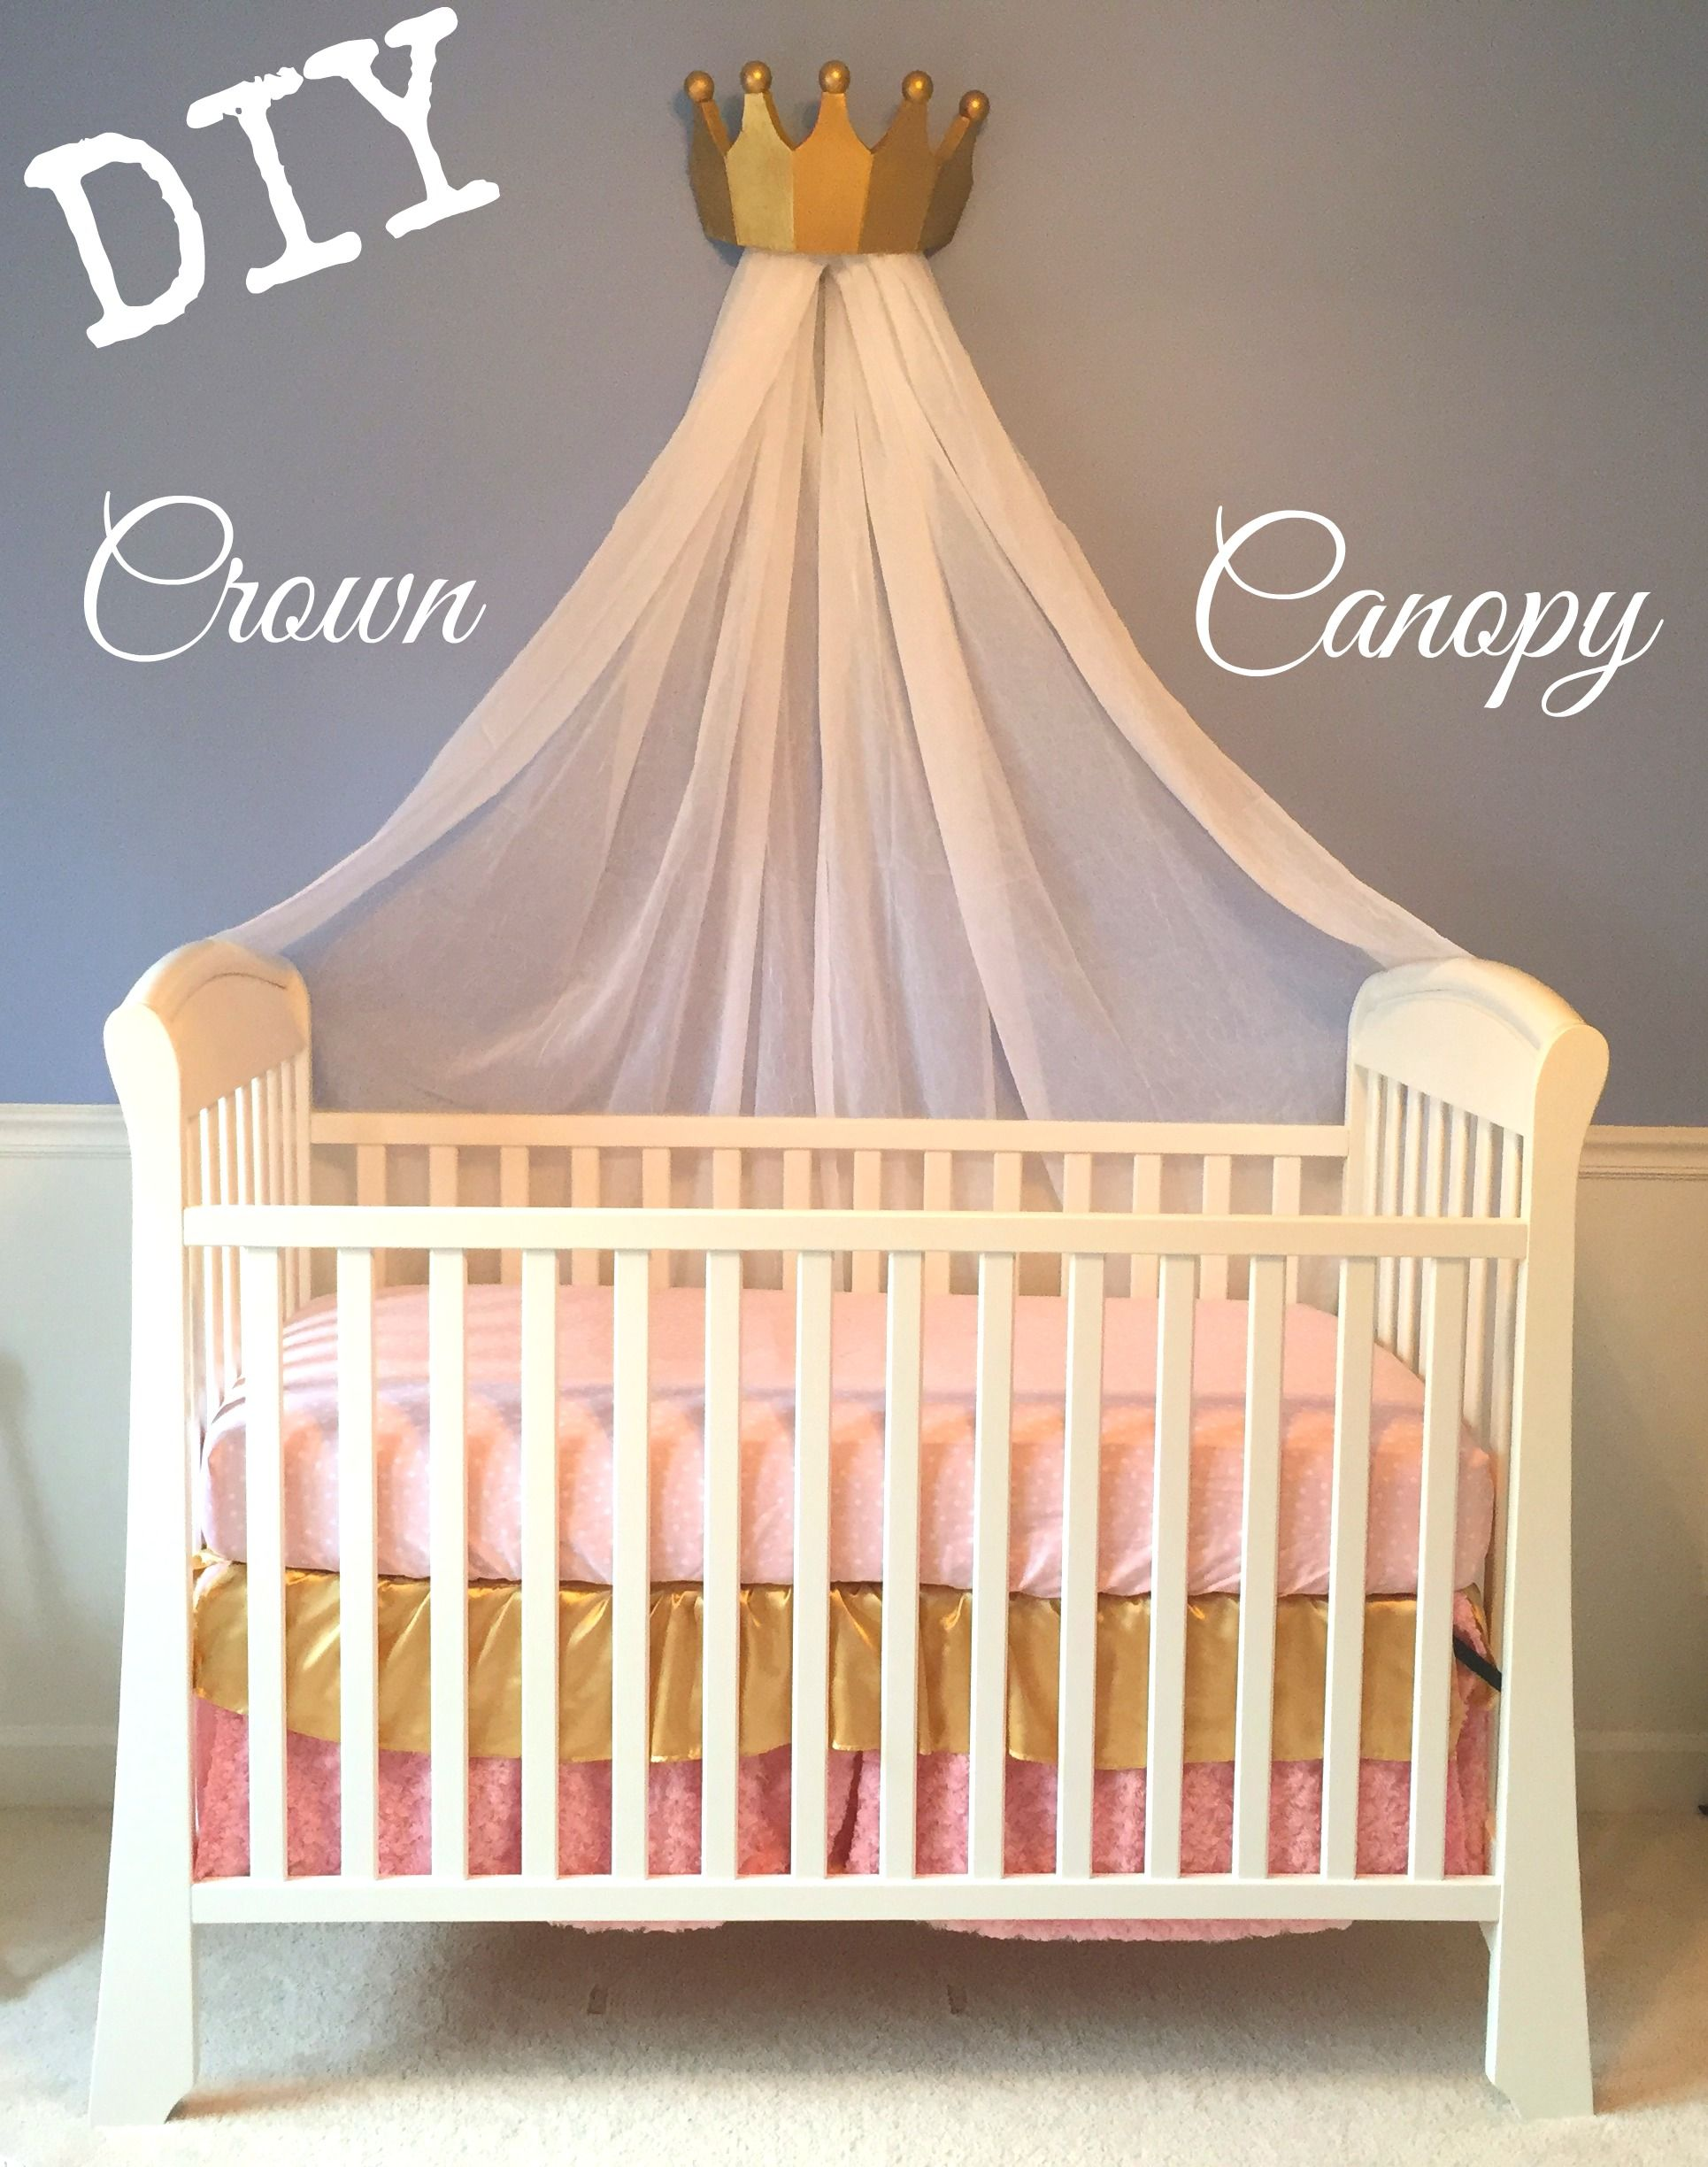 DIY Crown Canopy For A Crib Or Bed Fit For A Princess Eloise - Canopy idea bed crown